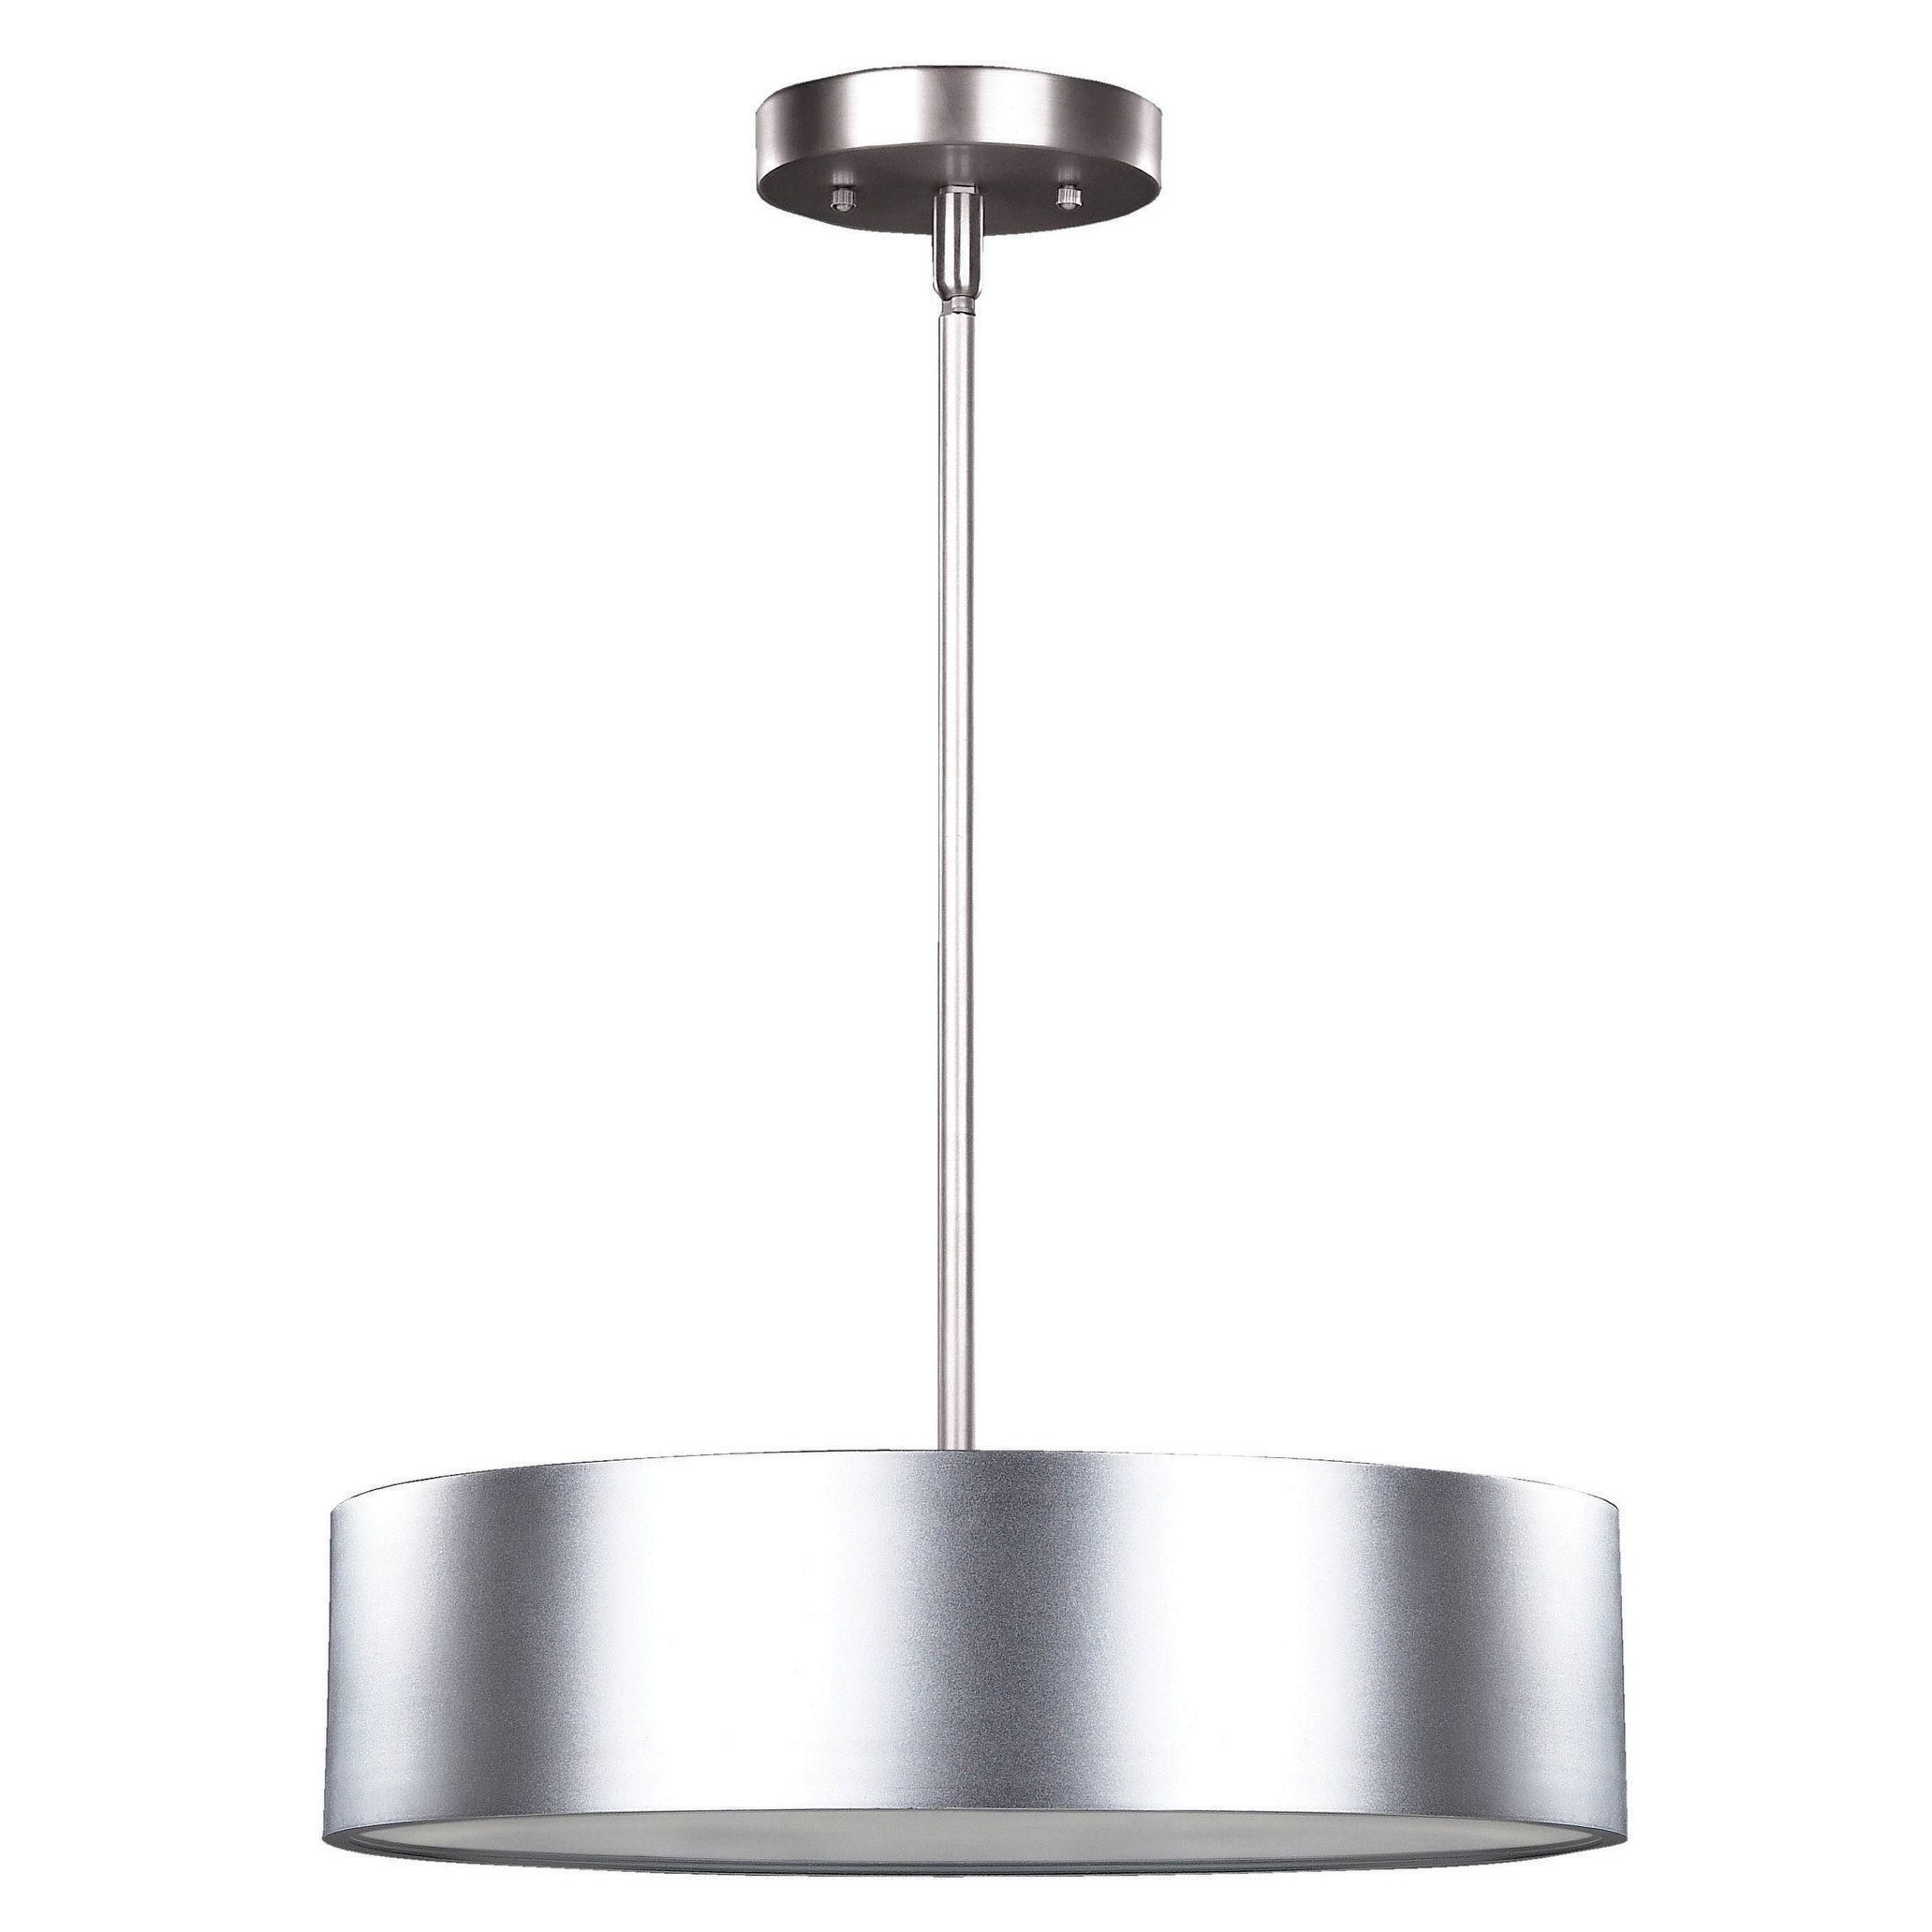 Canarm Dexter 3 Light Pendant With Frosted Diffuser And Aluminum Silver Finish